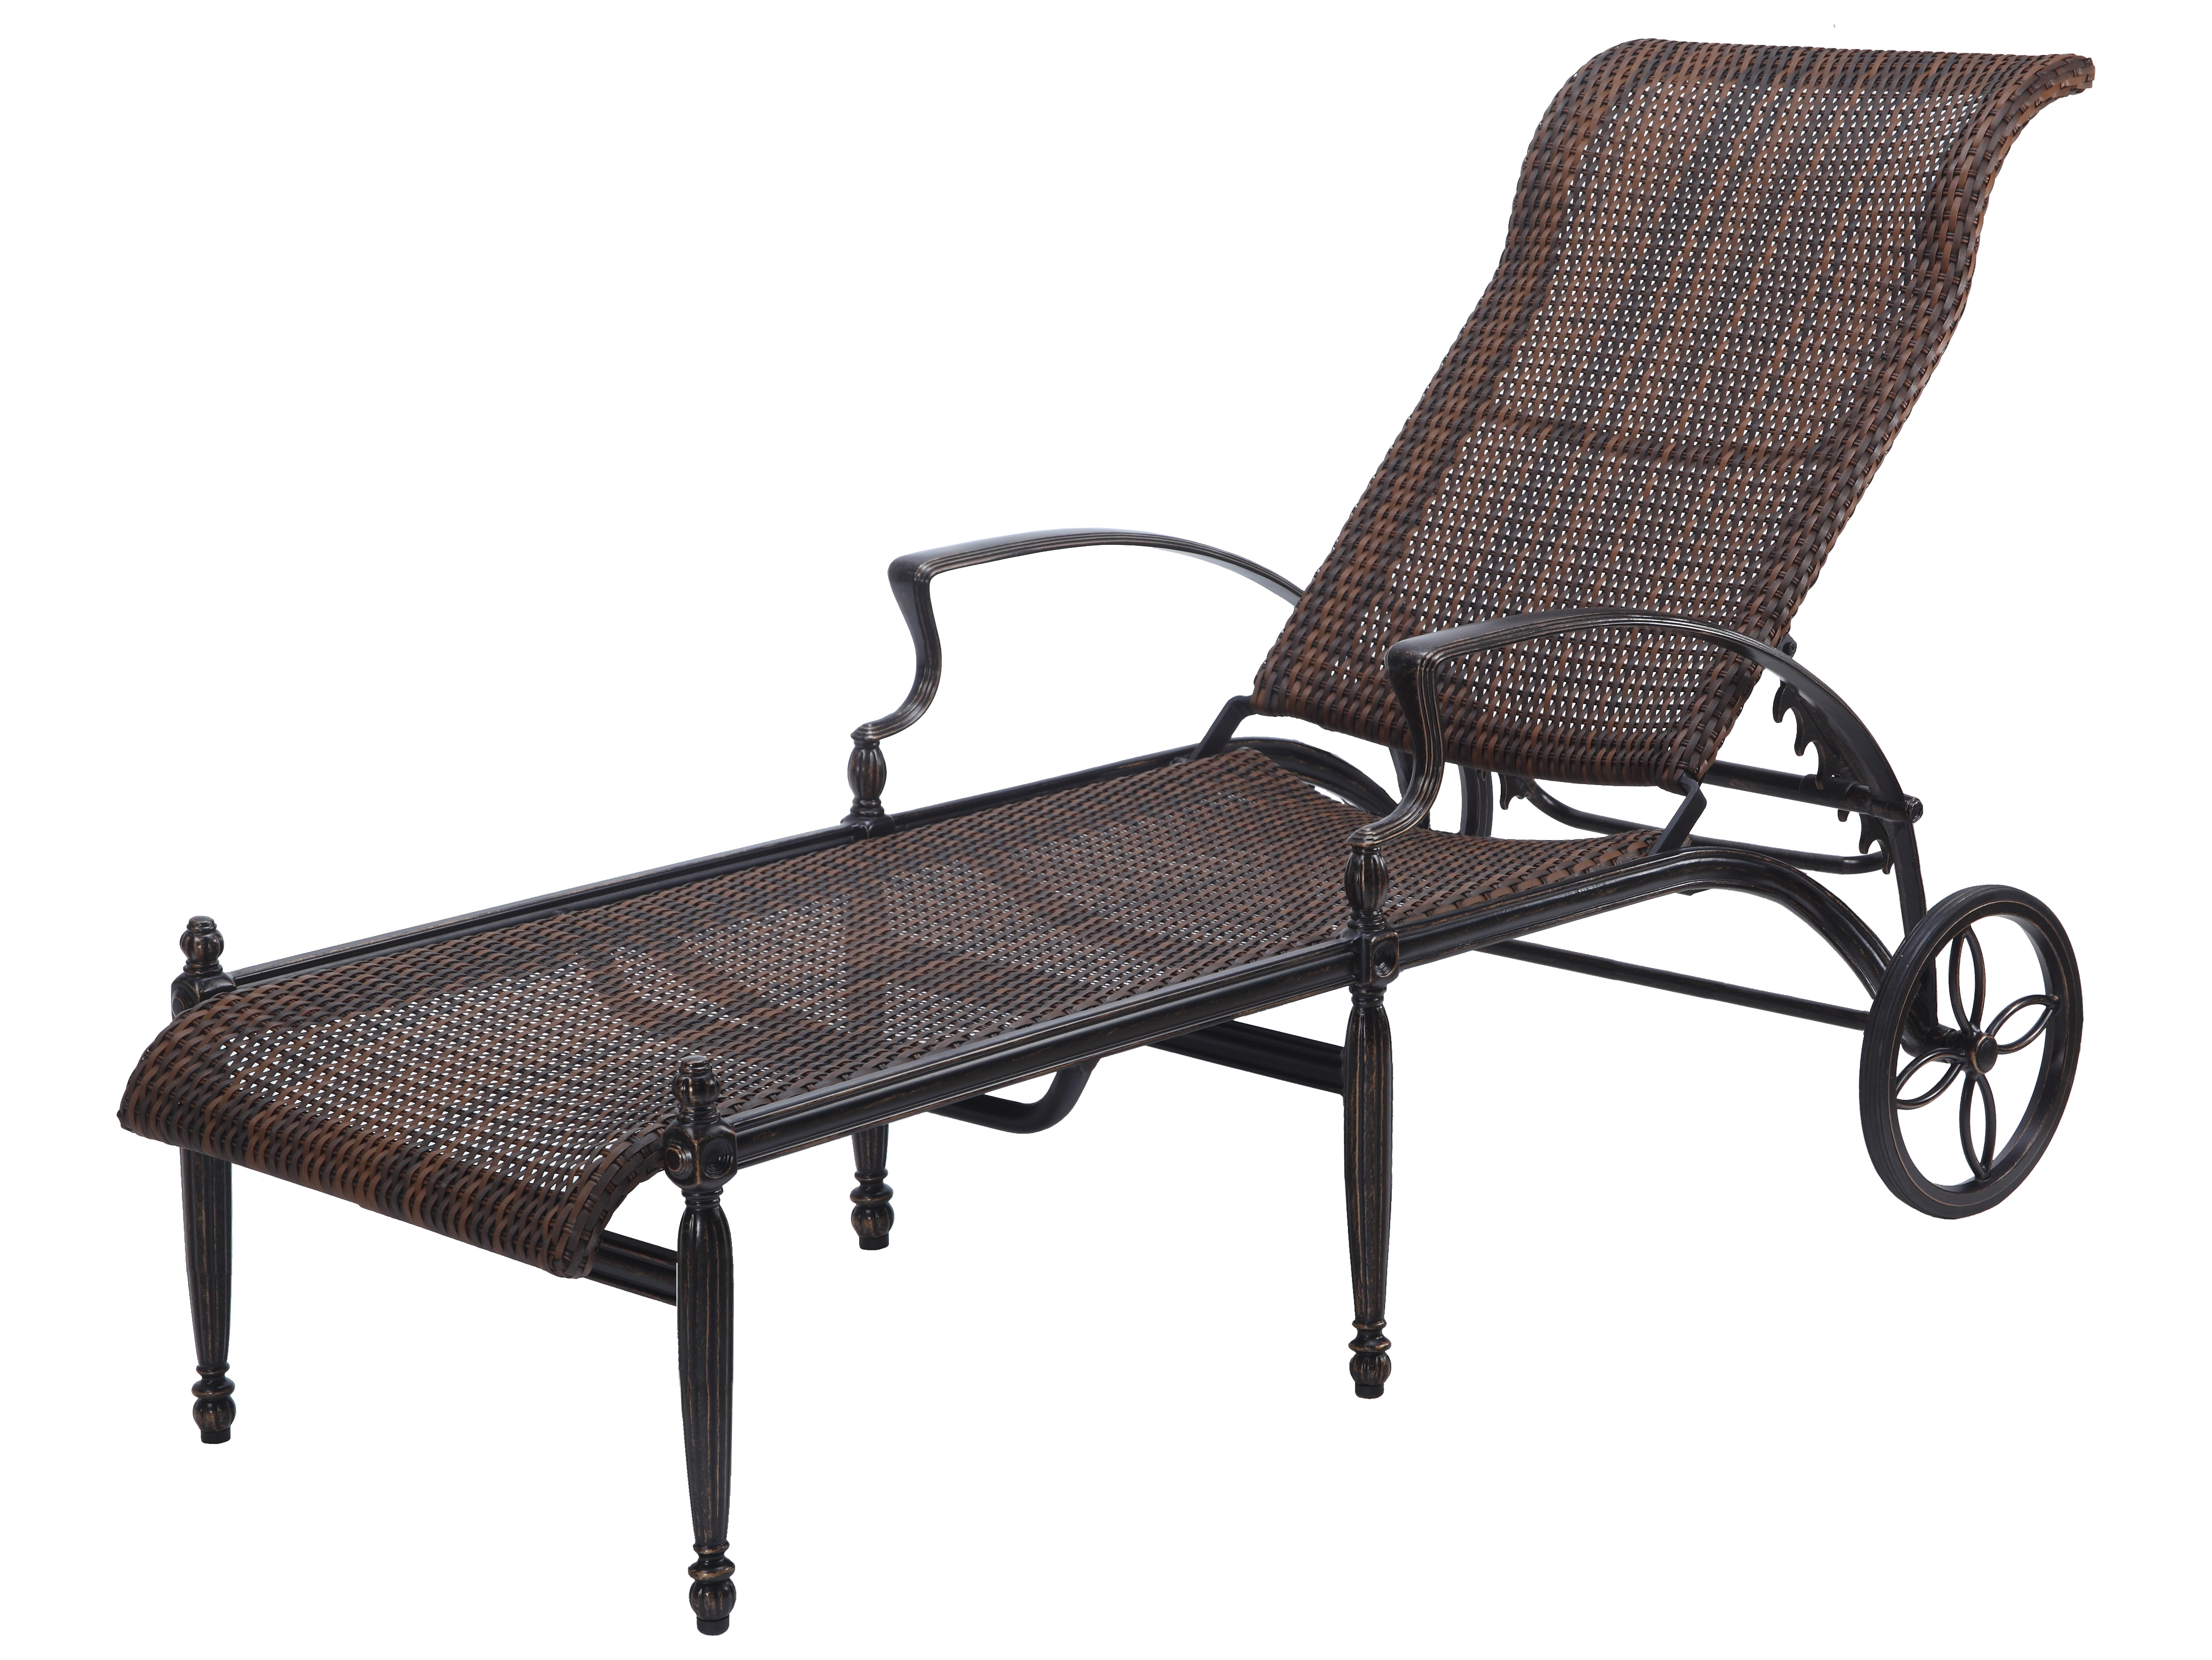 a chaise cast sofa lounge the villa set outdoor guide com furniture grande sectional patioproductions curved aluminum to